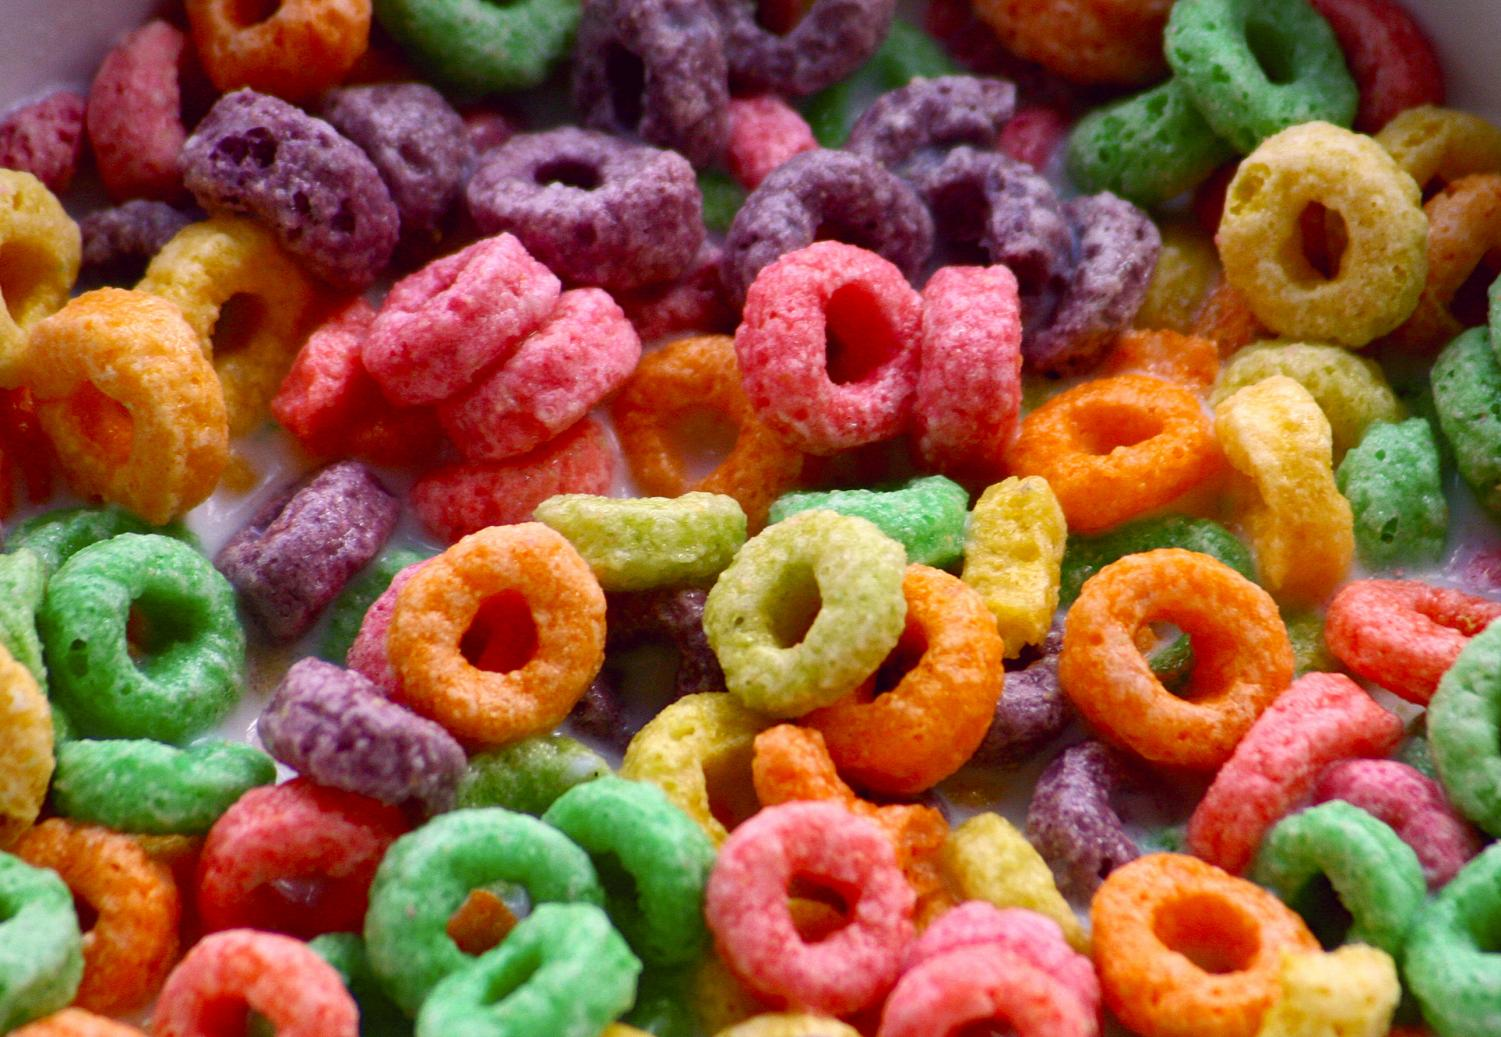 Froot loops are a very popular cereal.